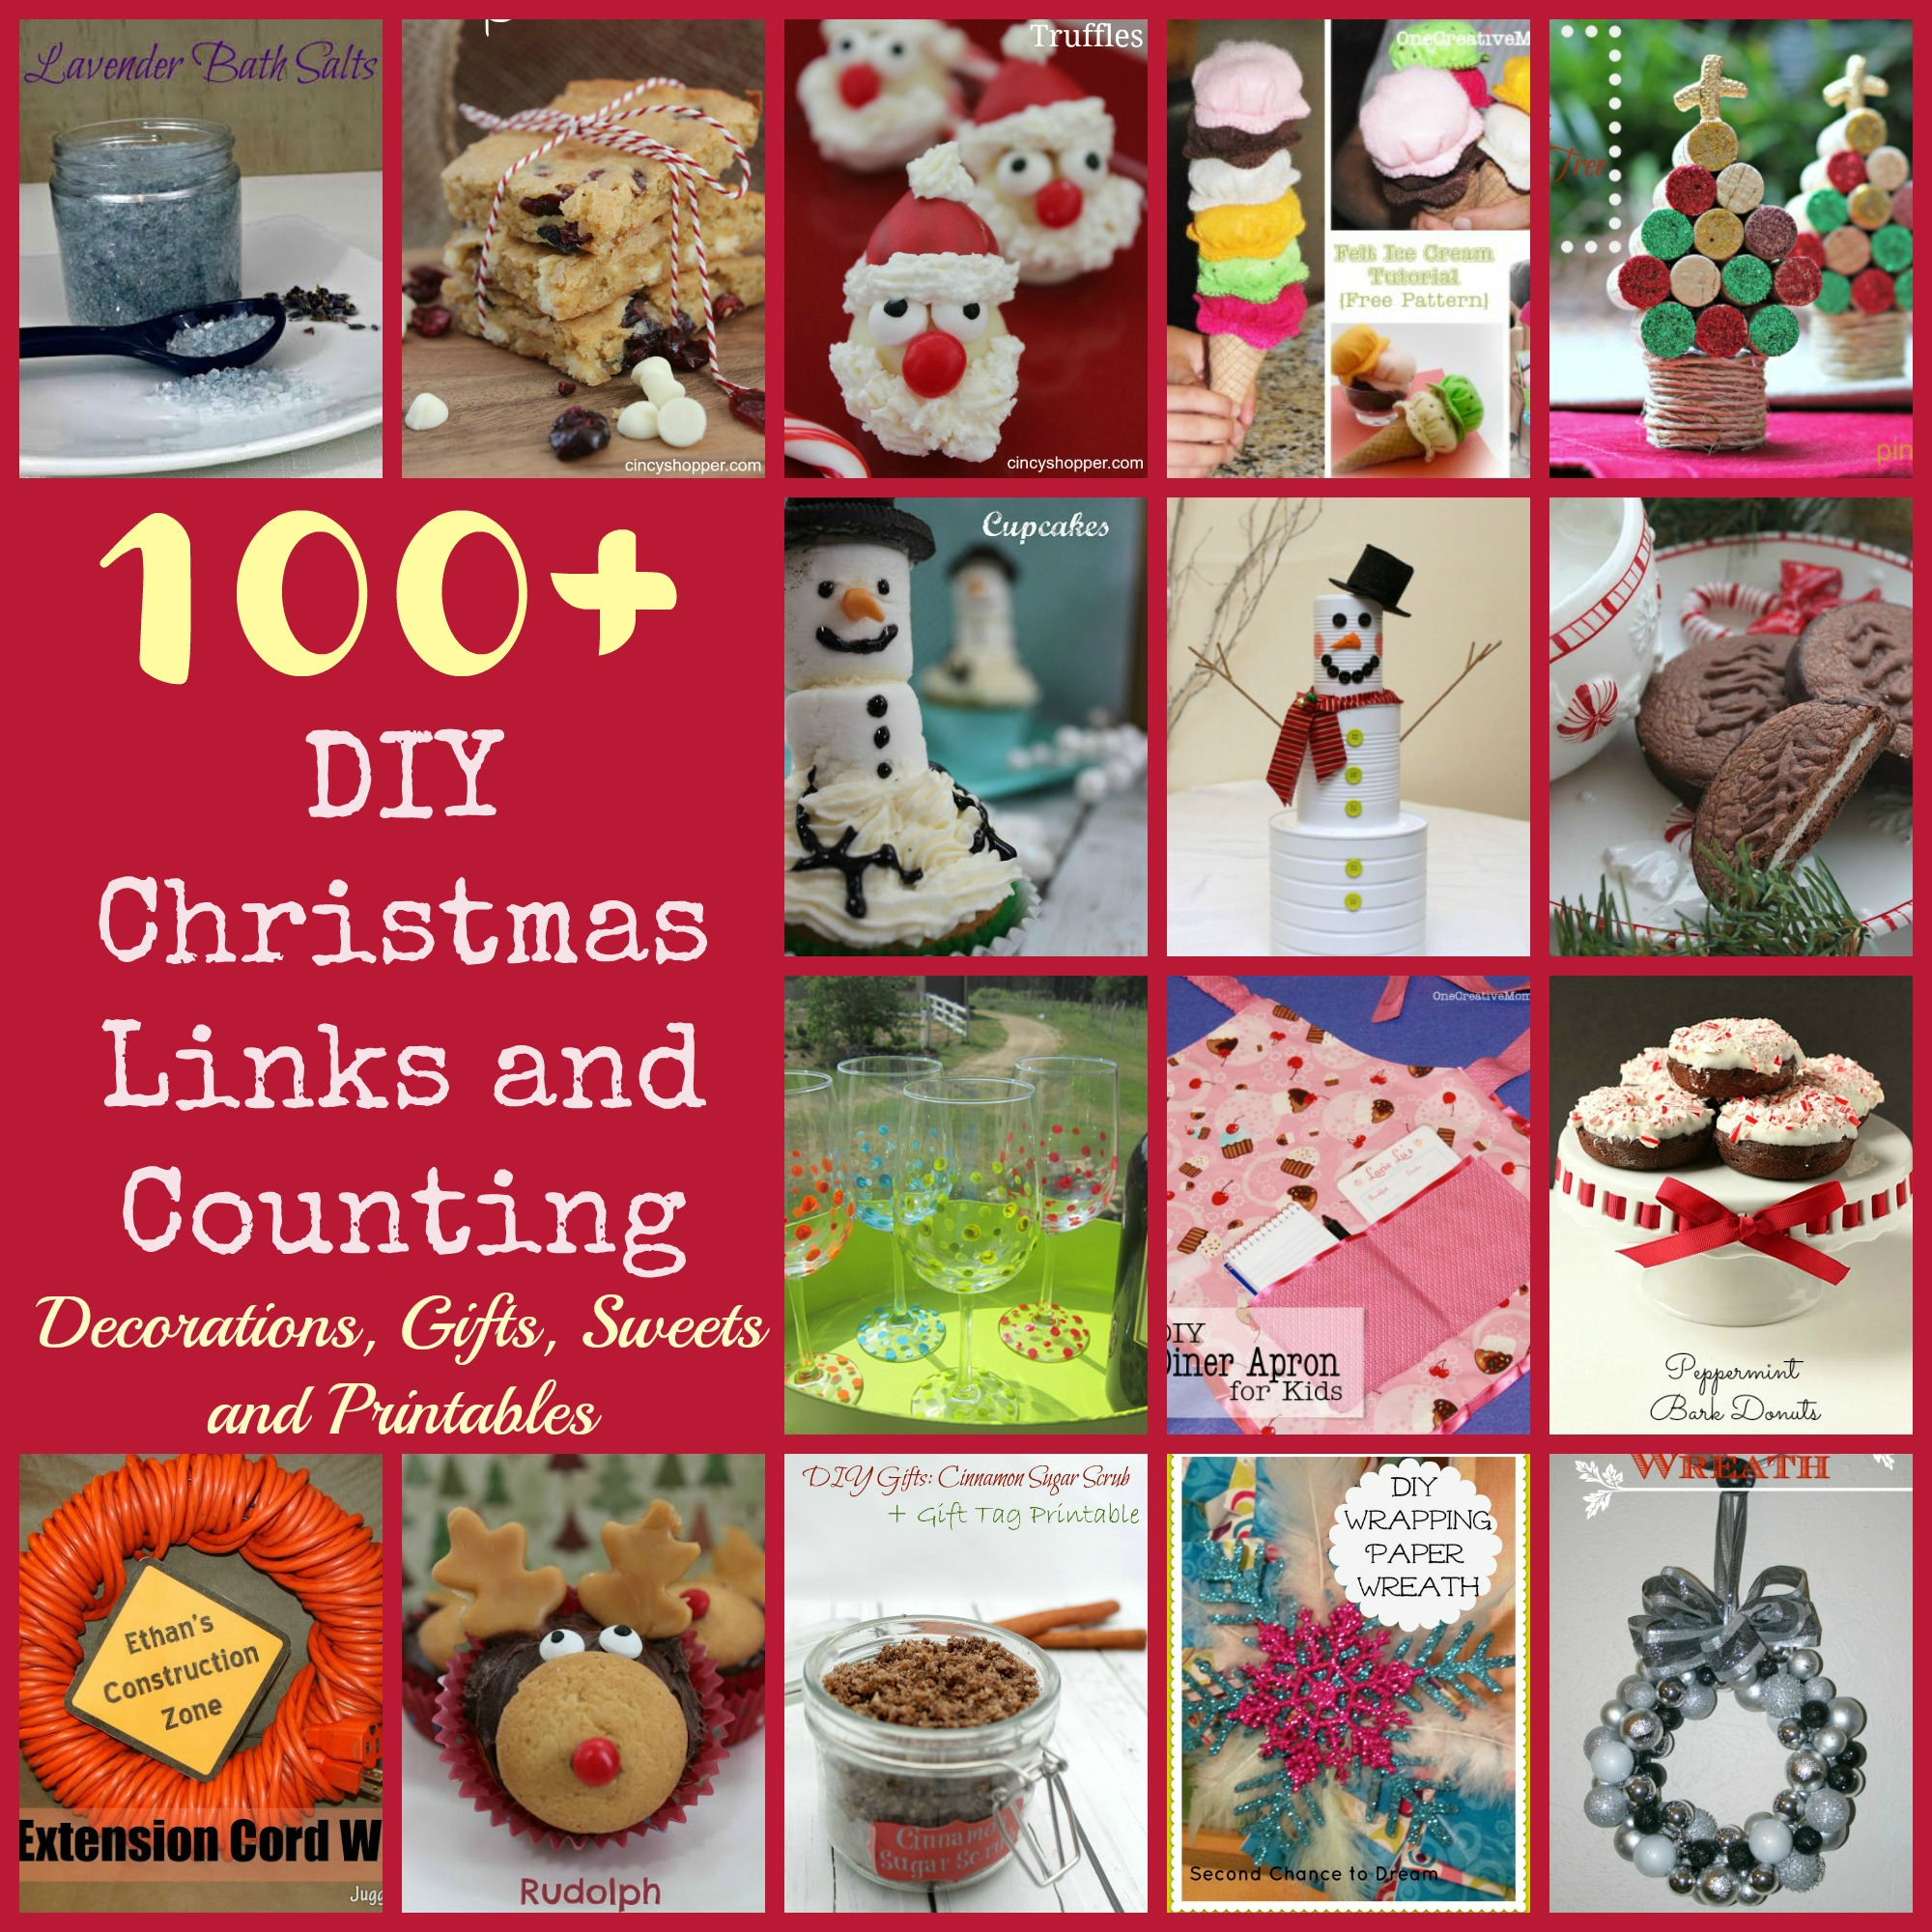 100+ DIY Christmas Gifts, Decorations, Sweets and Printables